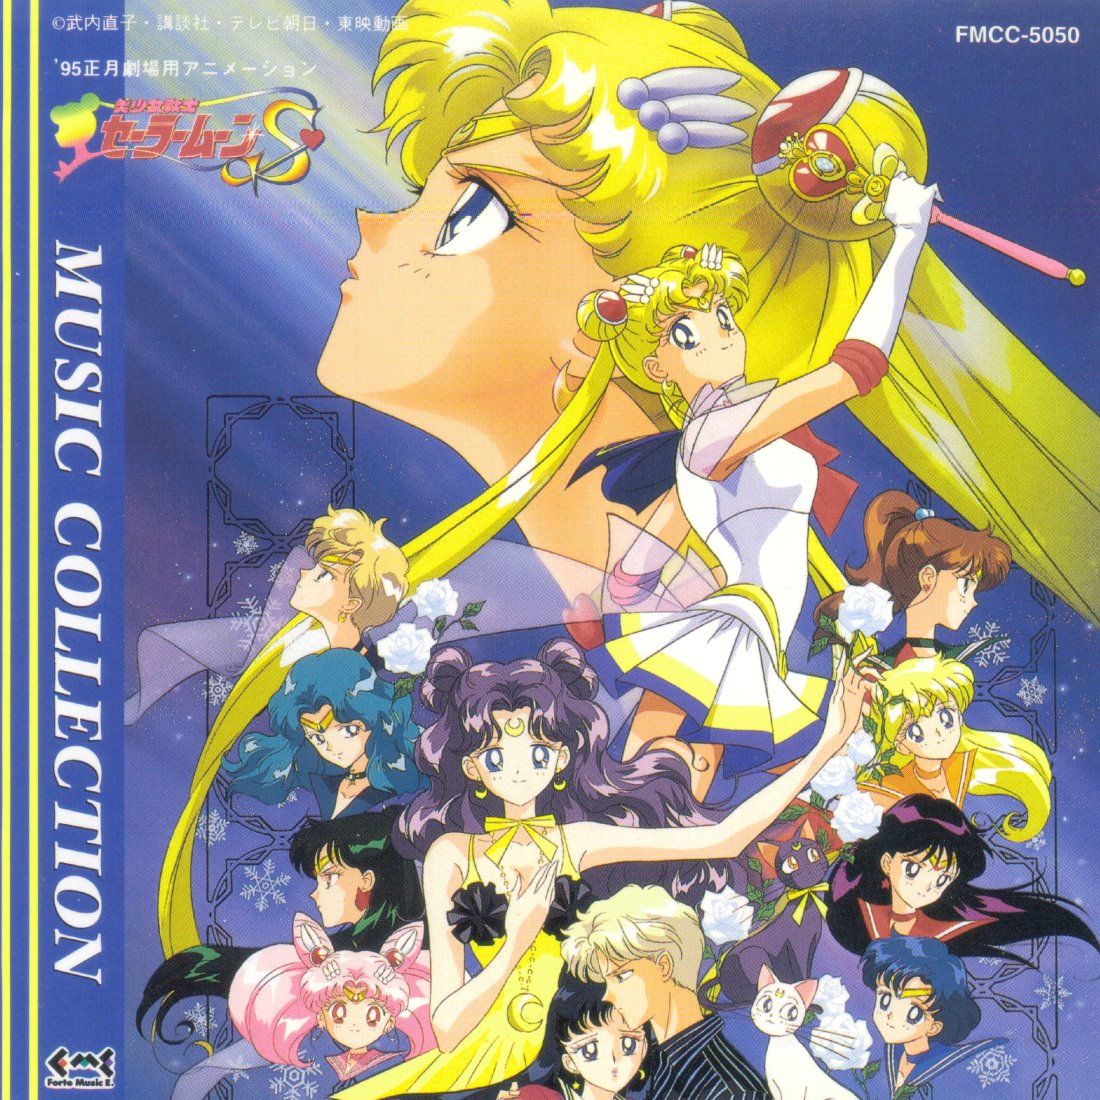 Pretty Soldier Sailor Moon S: The Movie Music Collection